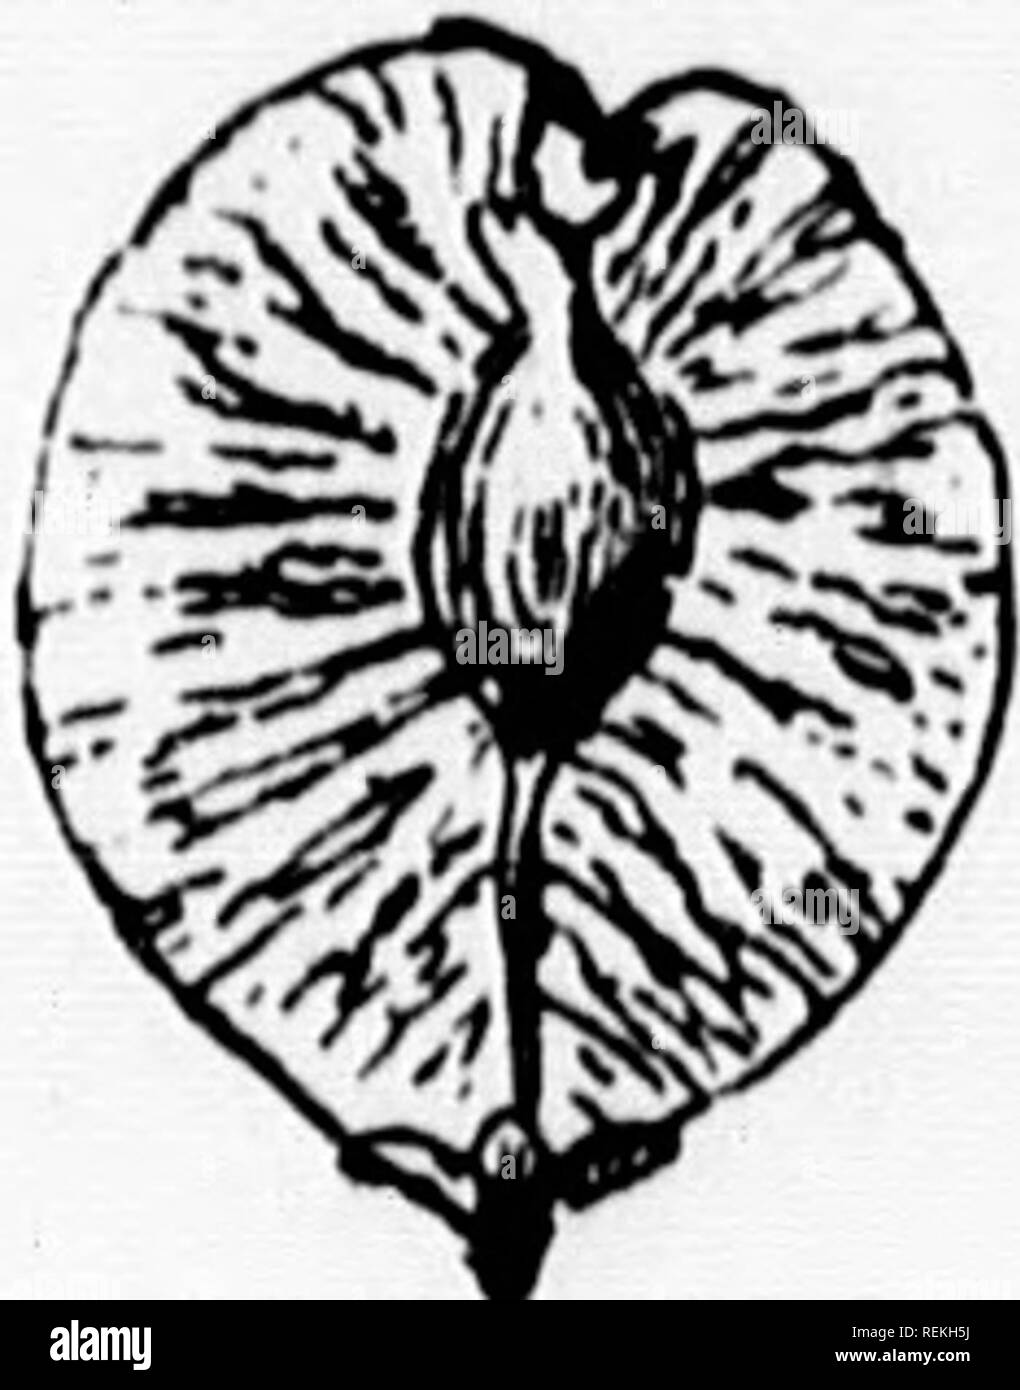 """. Elementary botany [microform]. Botany; Botanique. 96 DISPERSAL OF SEEDS fii agency of the wind, the fruits or seeds are very small- or they oppose a large surface to the wind. The large surface maybe merely due to the flattened form of the frdt or seed or It may be caused by the possession of wings or tufts of hair. It is to be noted that wl.en truits (or their carpels in the case of schizocarps) are closed and indehiscent, they (or the meri- carps) are the parts scattered, and adapted to aiu hspersal; the seeds in this case are passively Fig. x30.-sa.ara ''°'?^ '""""'^'^^ ;^e f^^its. But - Stock Image"""